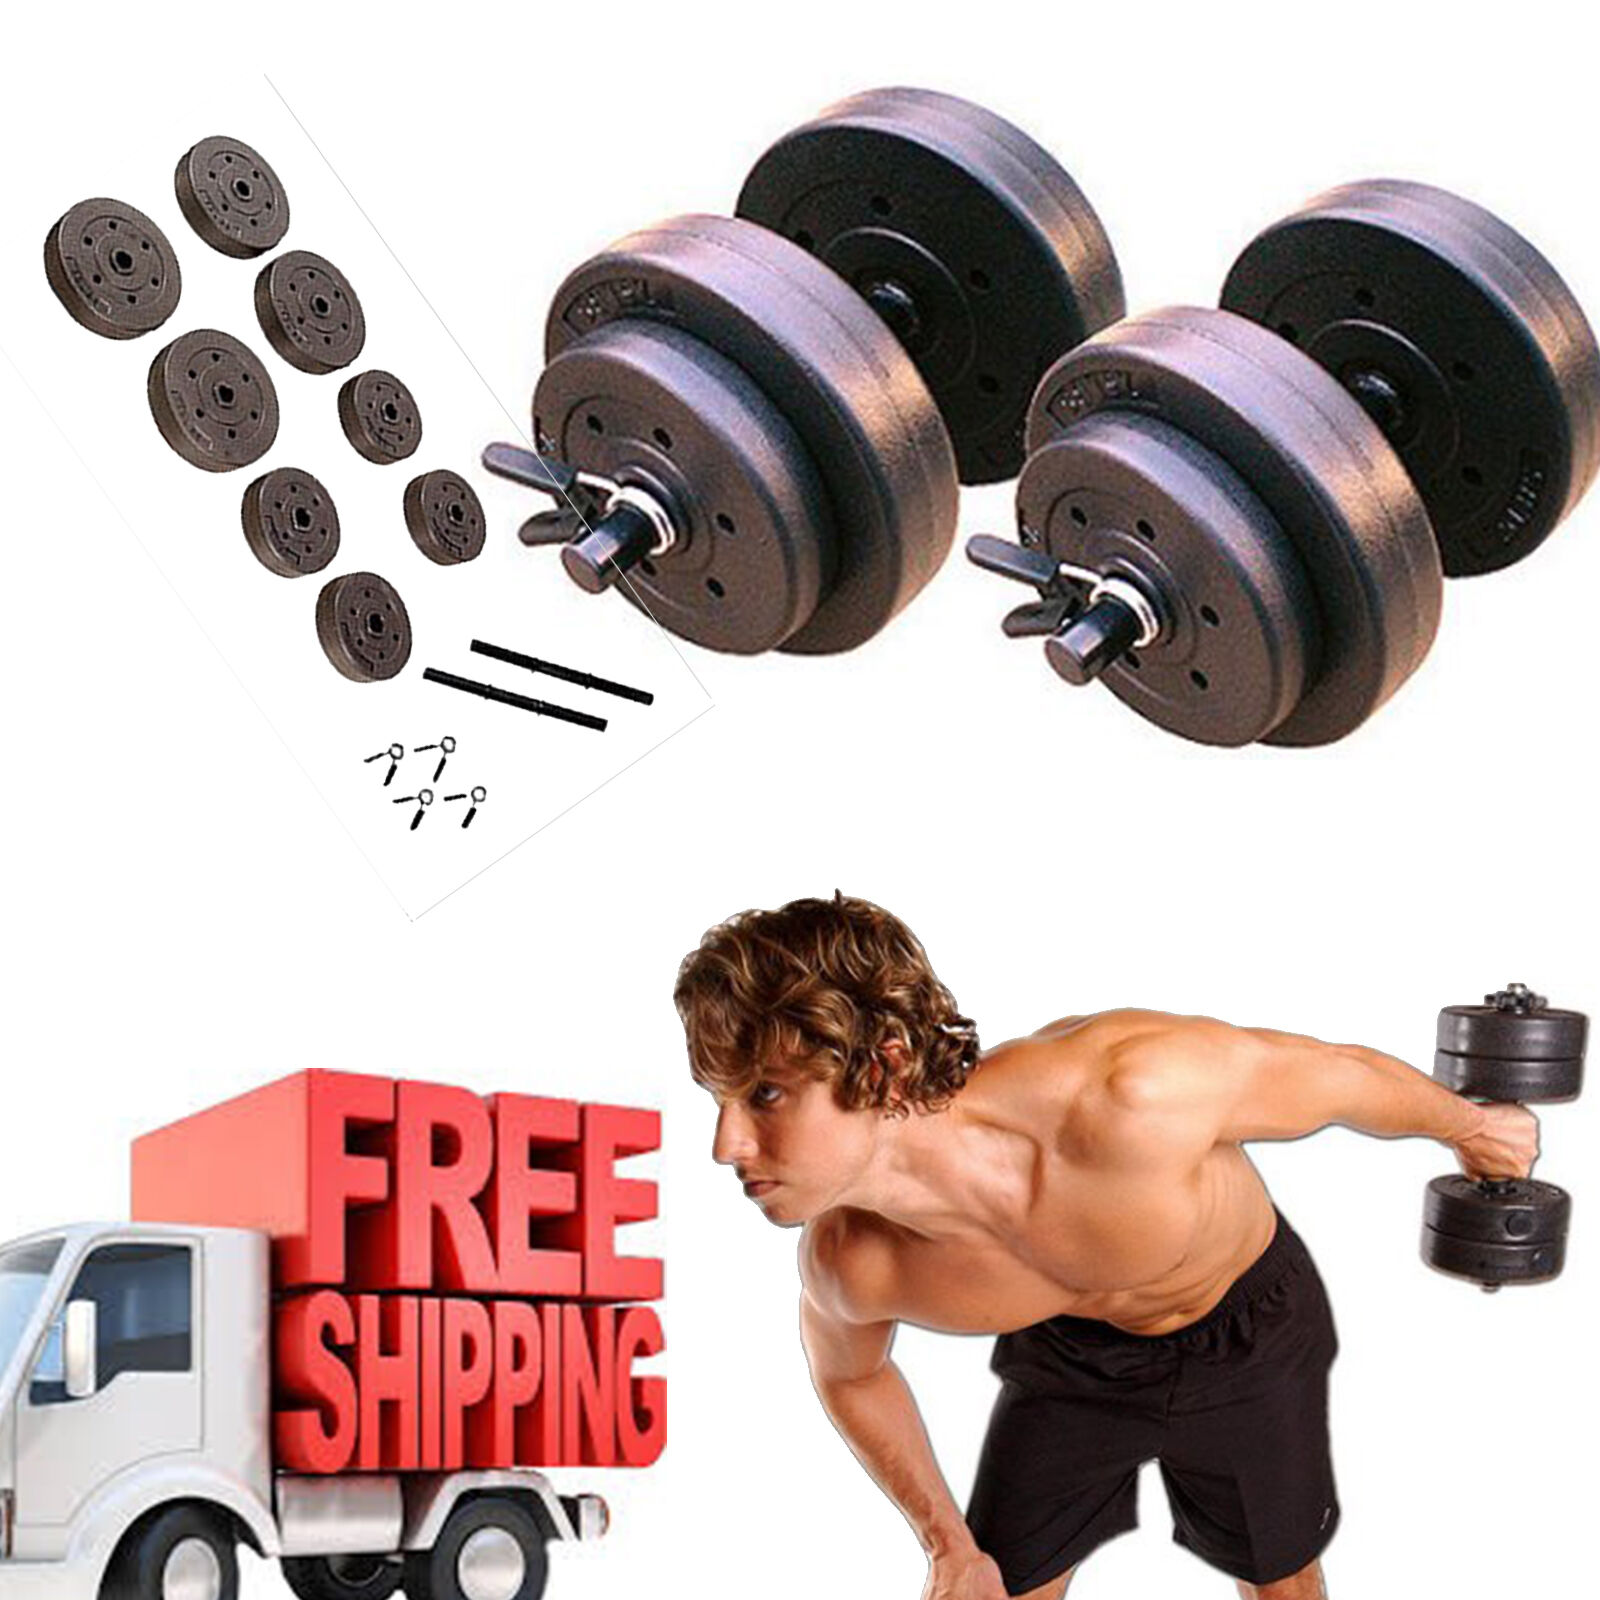 Dumbbell Set  golds Gym 40 Lb Vinyl Weight Home Fitness Equipment Adjustable  100% free shipping